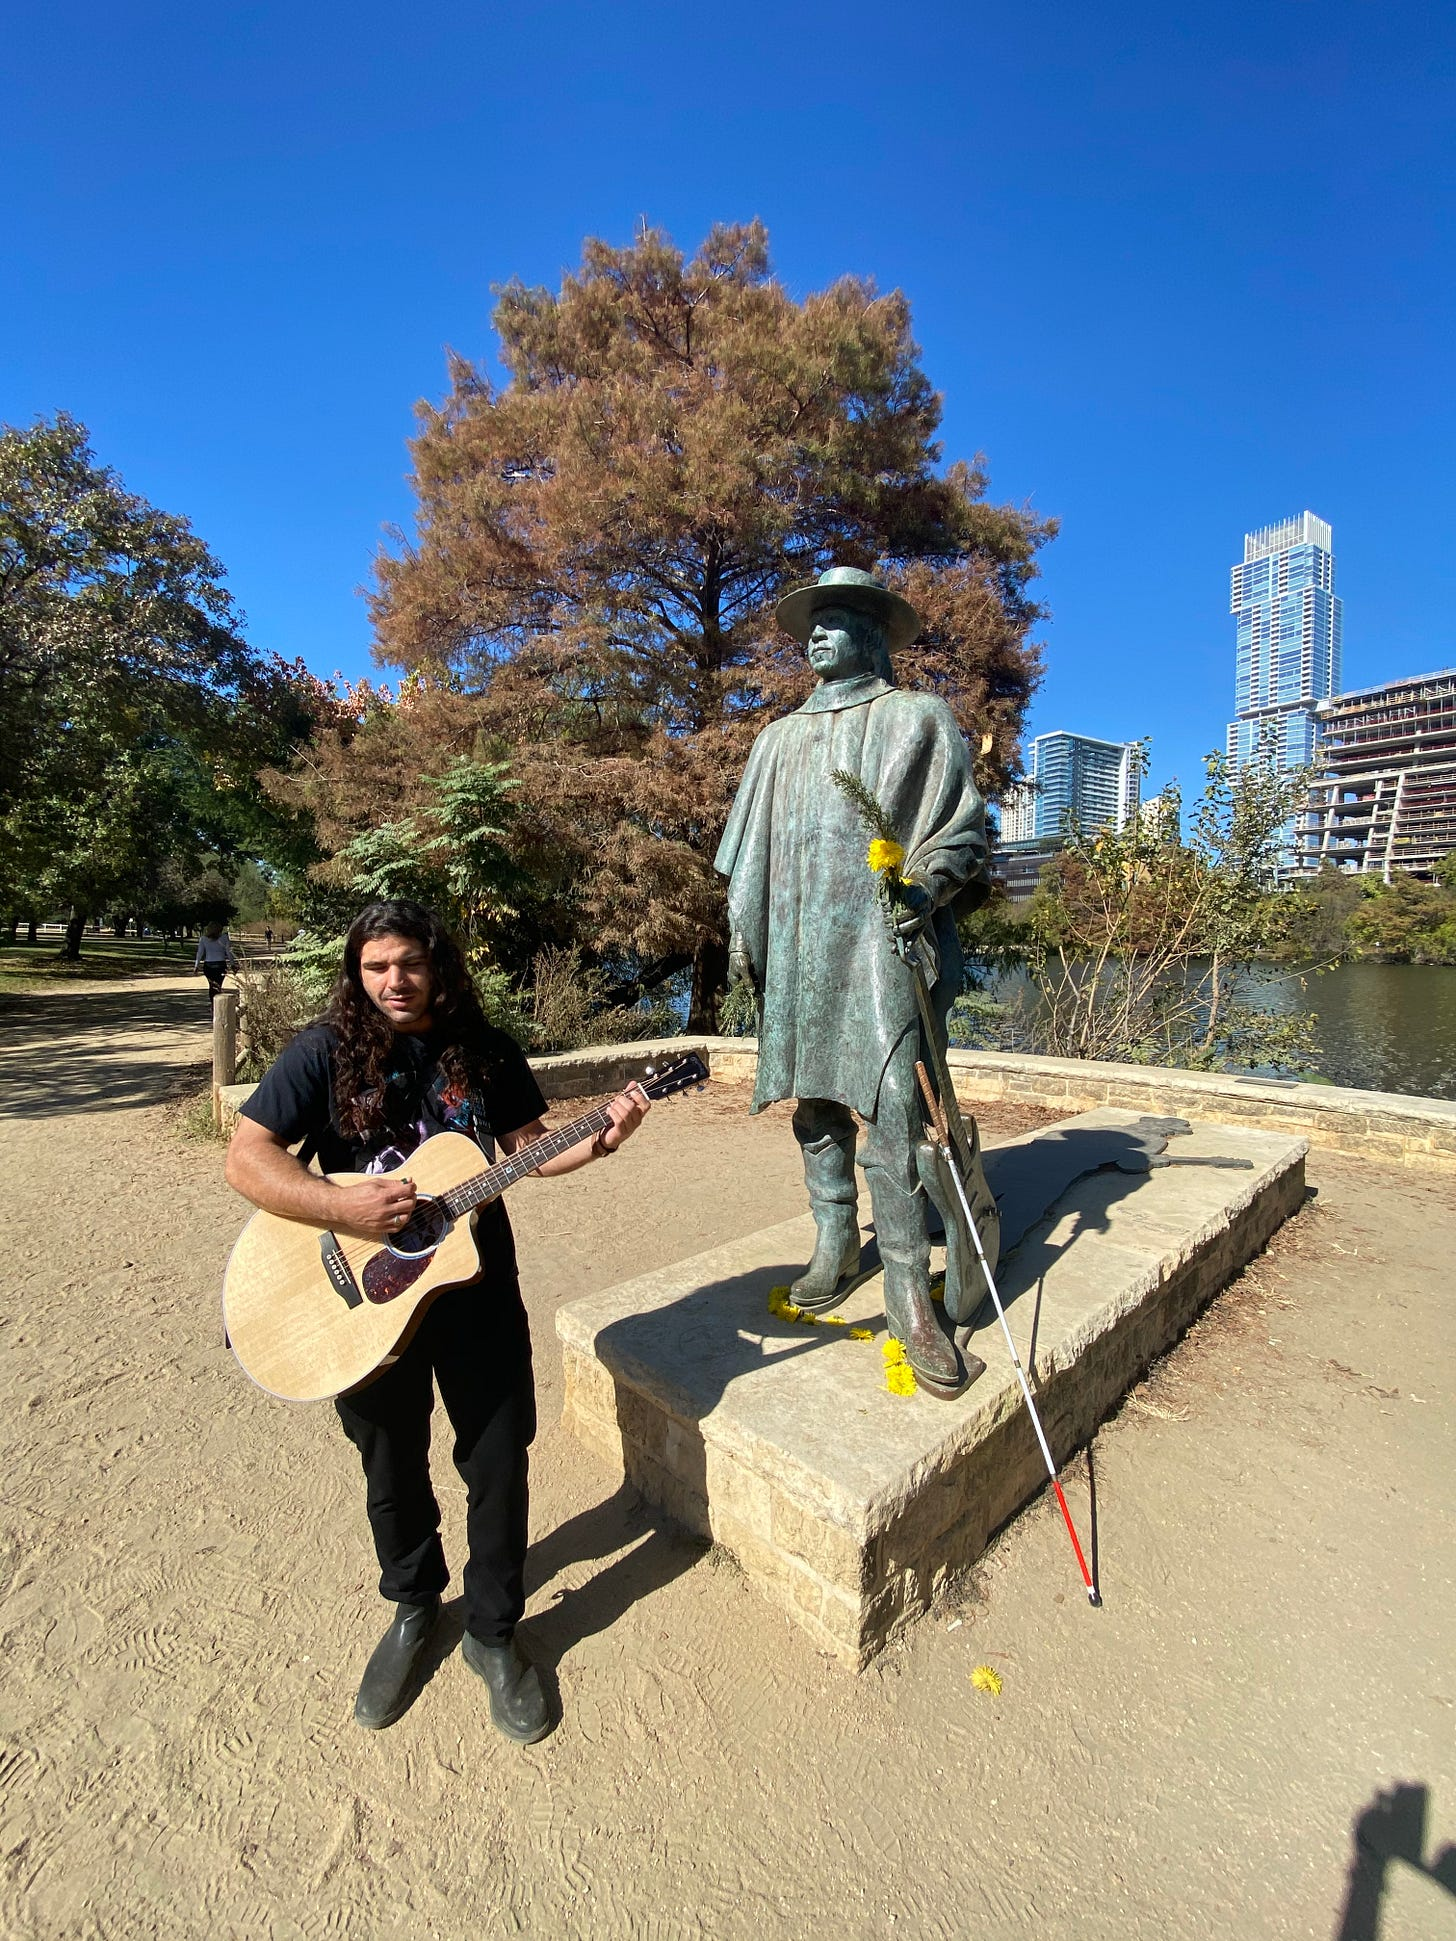 anthony standing in front of the stevie ray vaughn status with yellow flowers on stevies hands -- ant is holding his guitar and smiling up at his hero